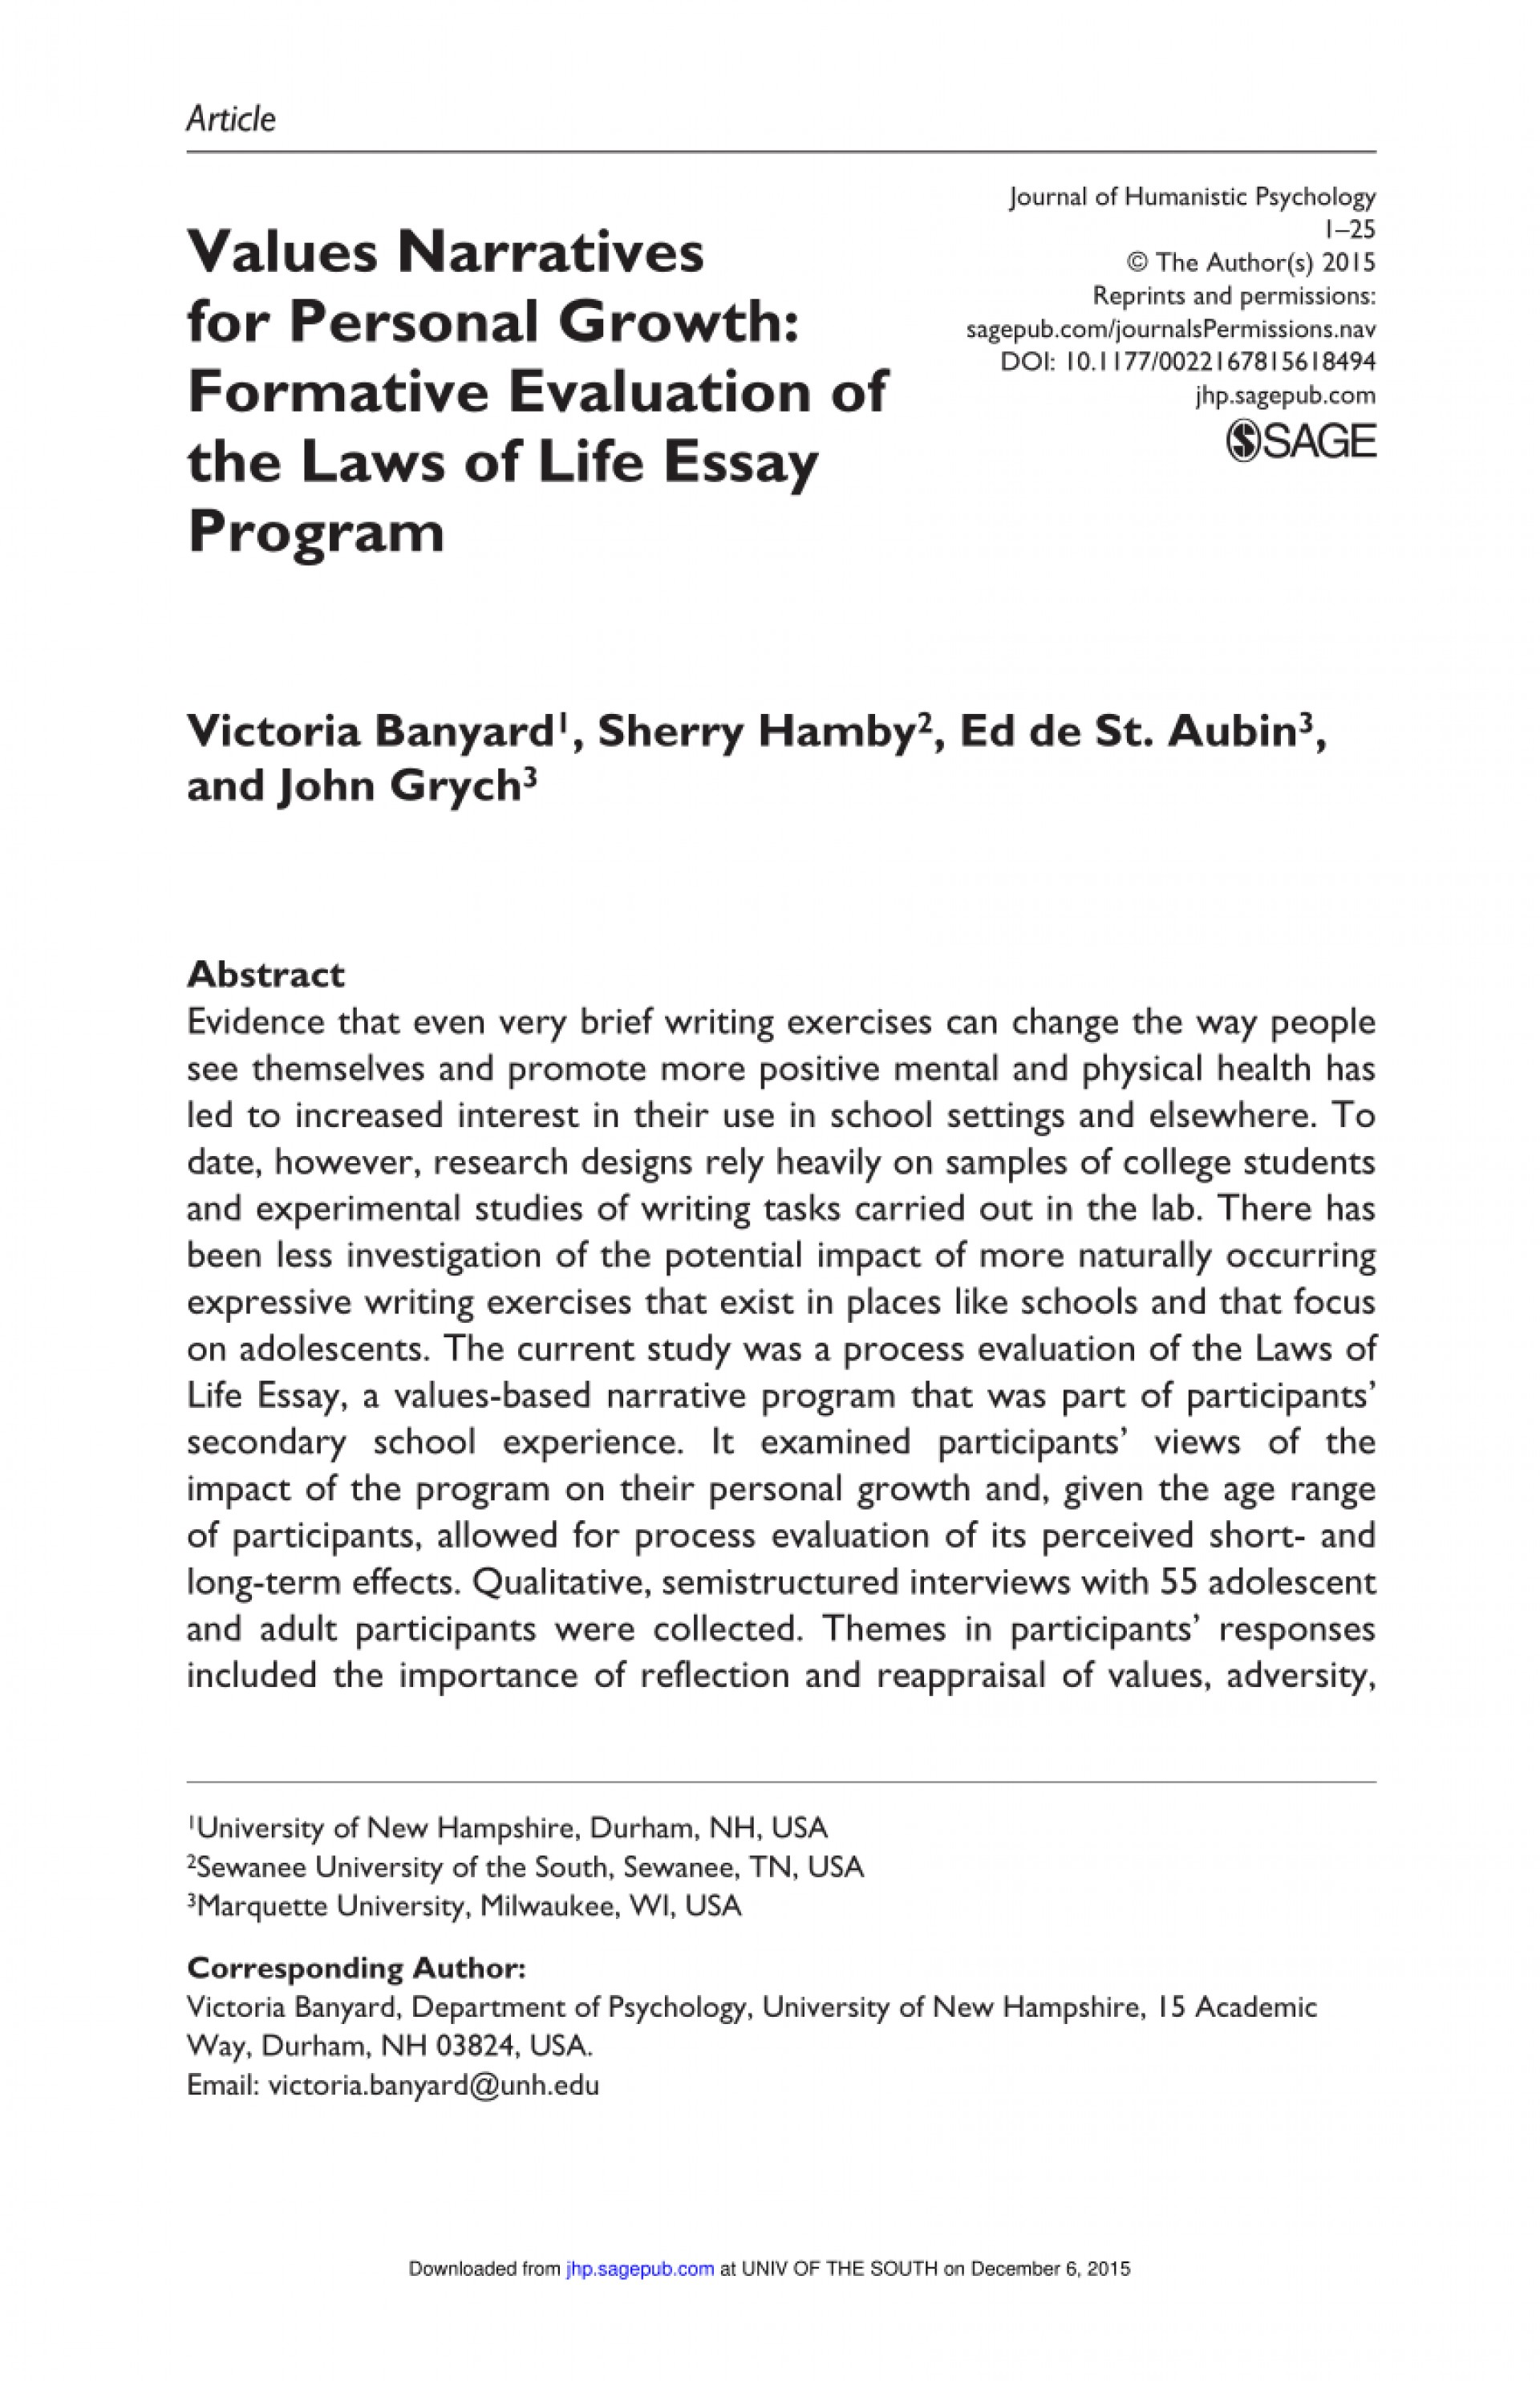 008 Essay Example Largepreview Law Of Awesome Life Laws Contest Ohio 2016 Competition Bahamas 2018 1920